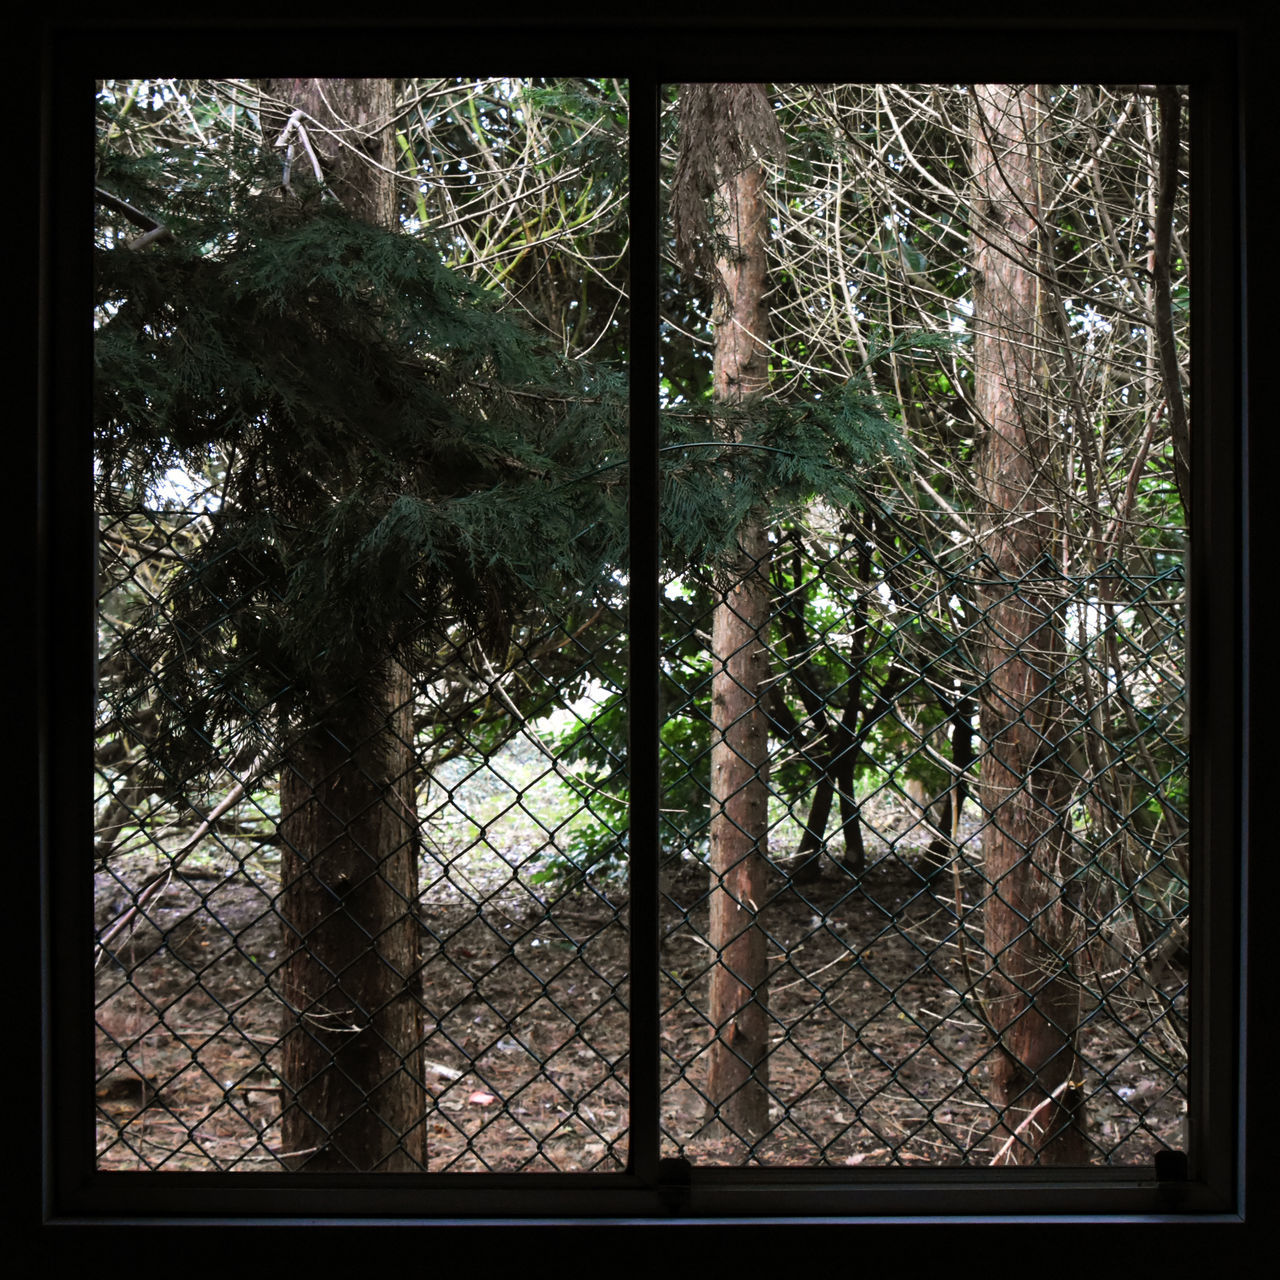 Branch Chainlink Fence Conifers Day Looking Out Nature No People Outdoors Square Windows Tree View From The Window... Woods